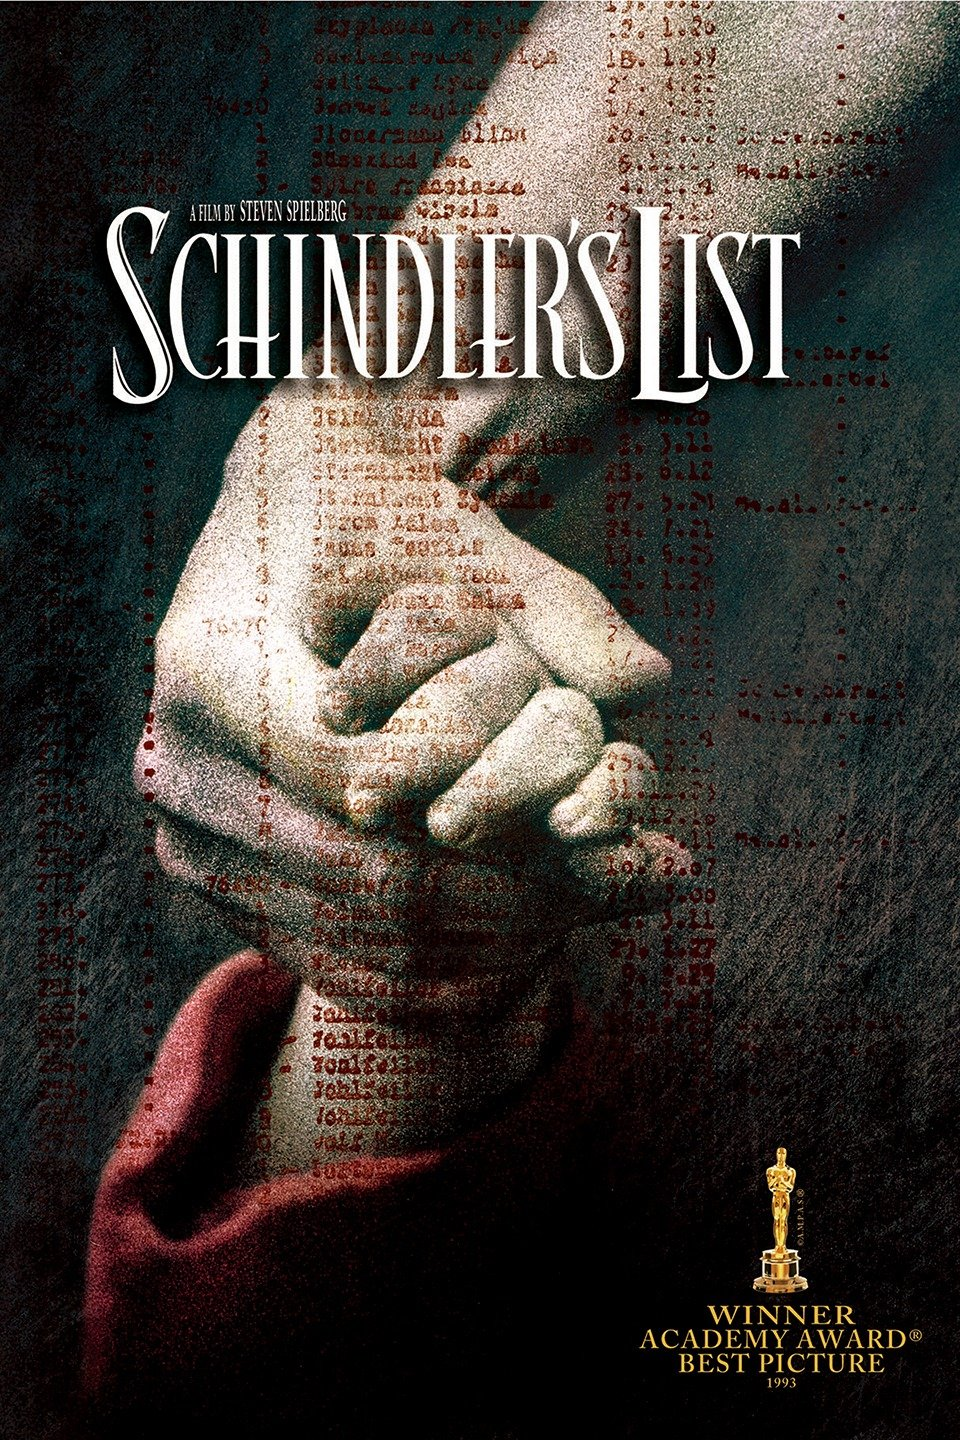 Schindler's List (1993) | Soundeffects Wiki | FANDOM powered by Wikia